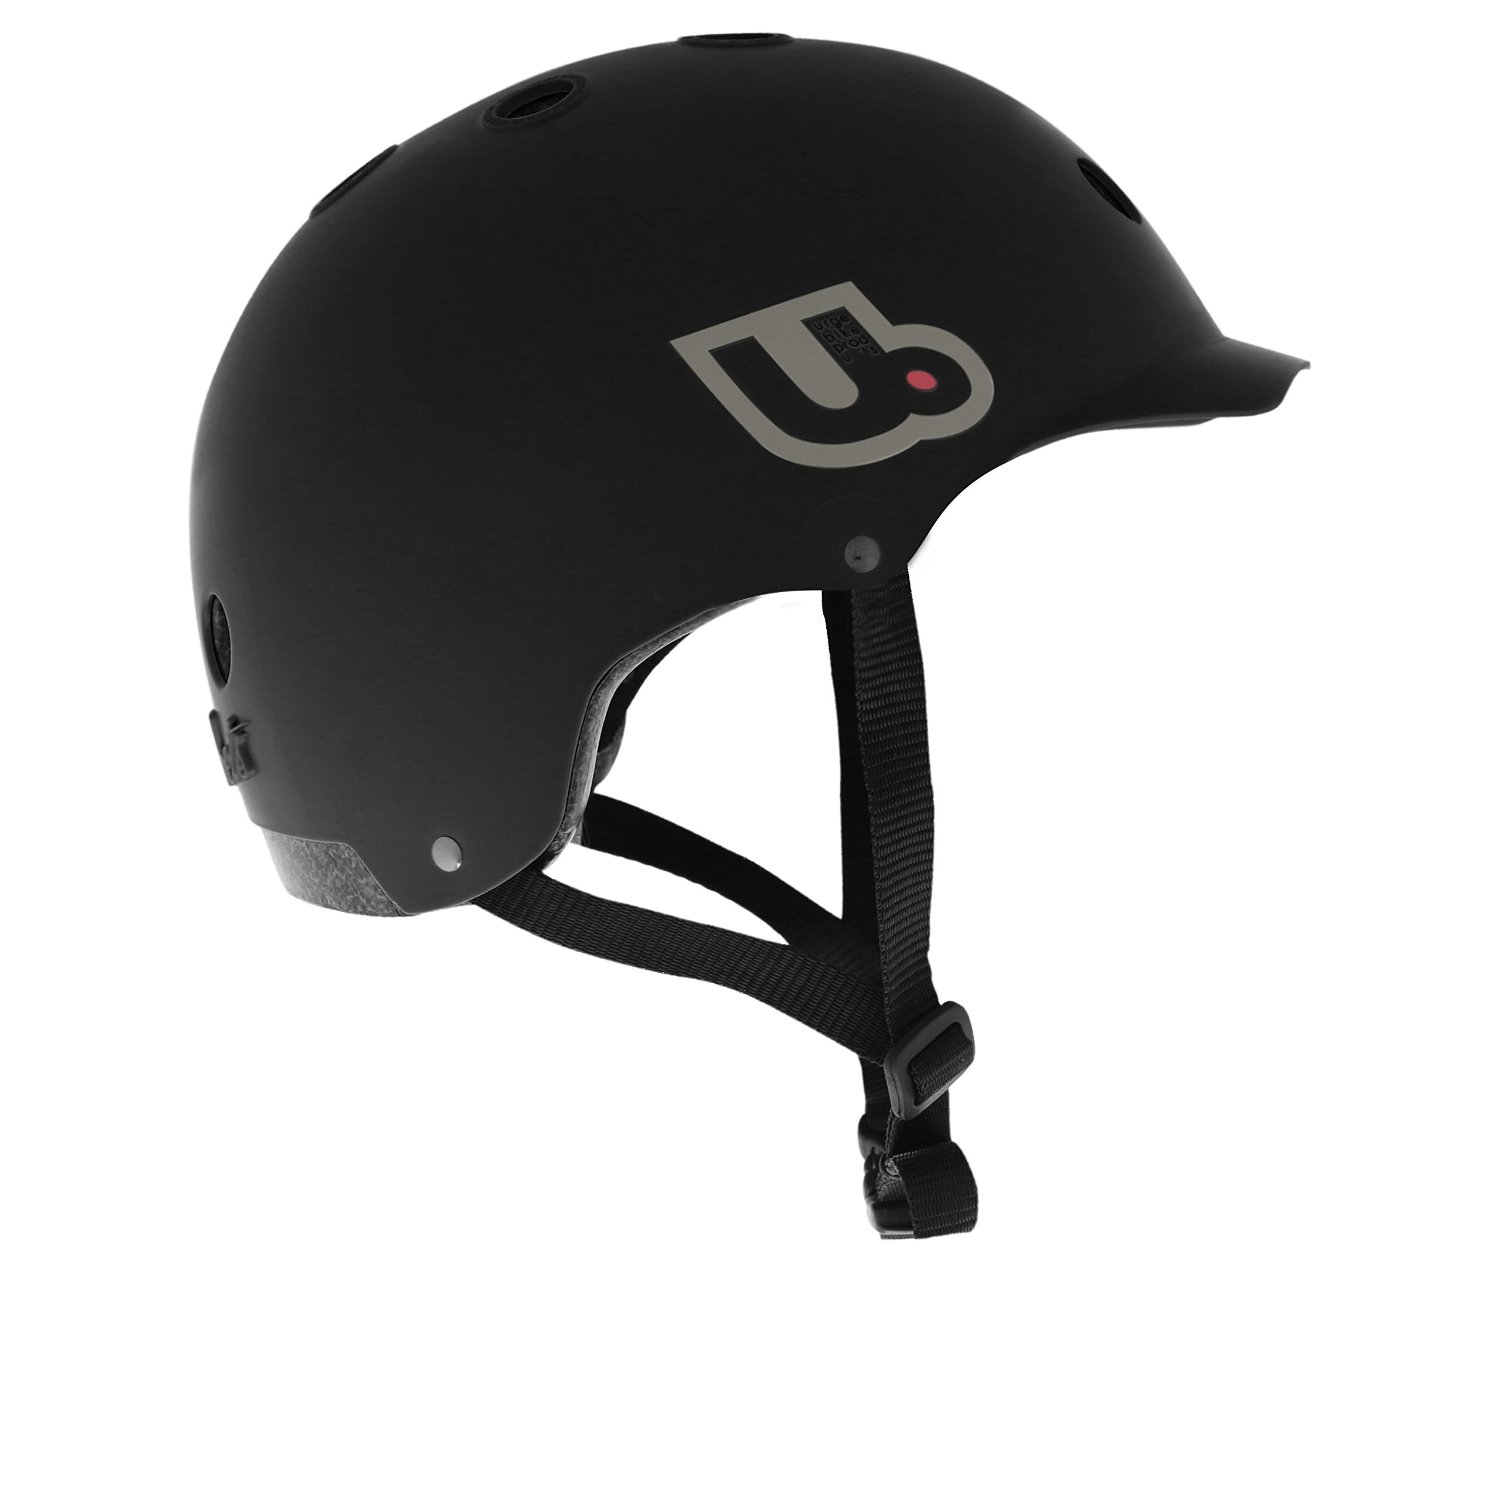 X-Large Urge Bike Products Bicycle Helmets